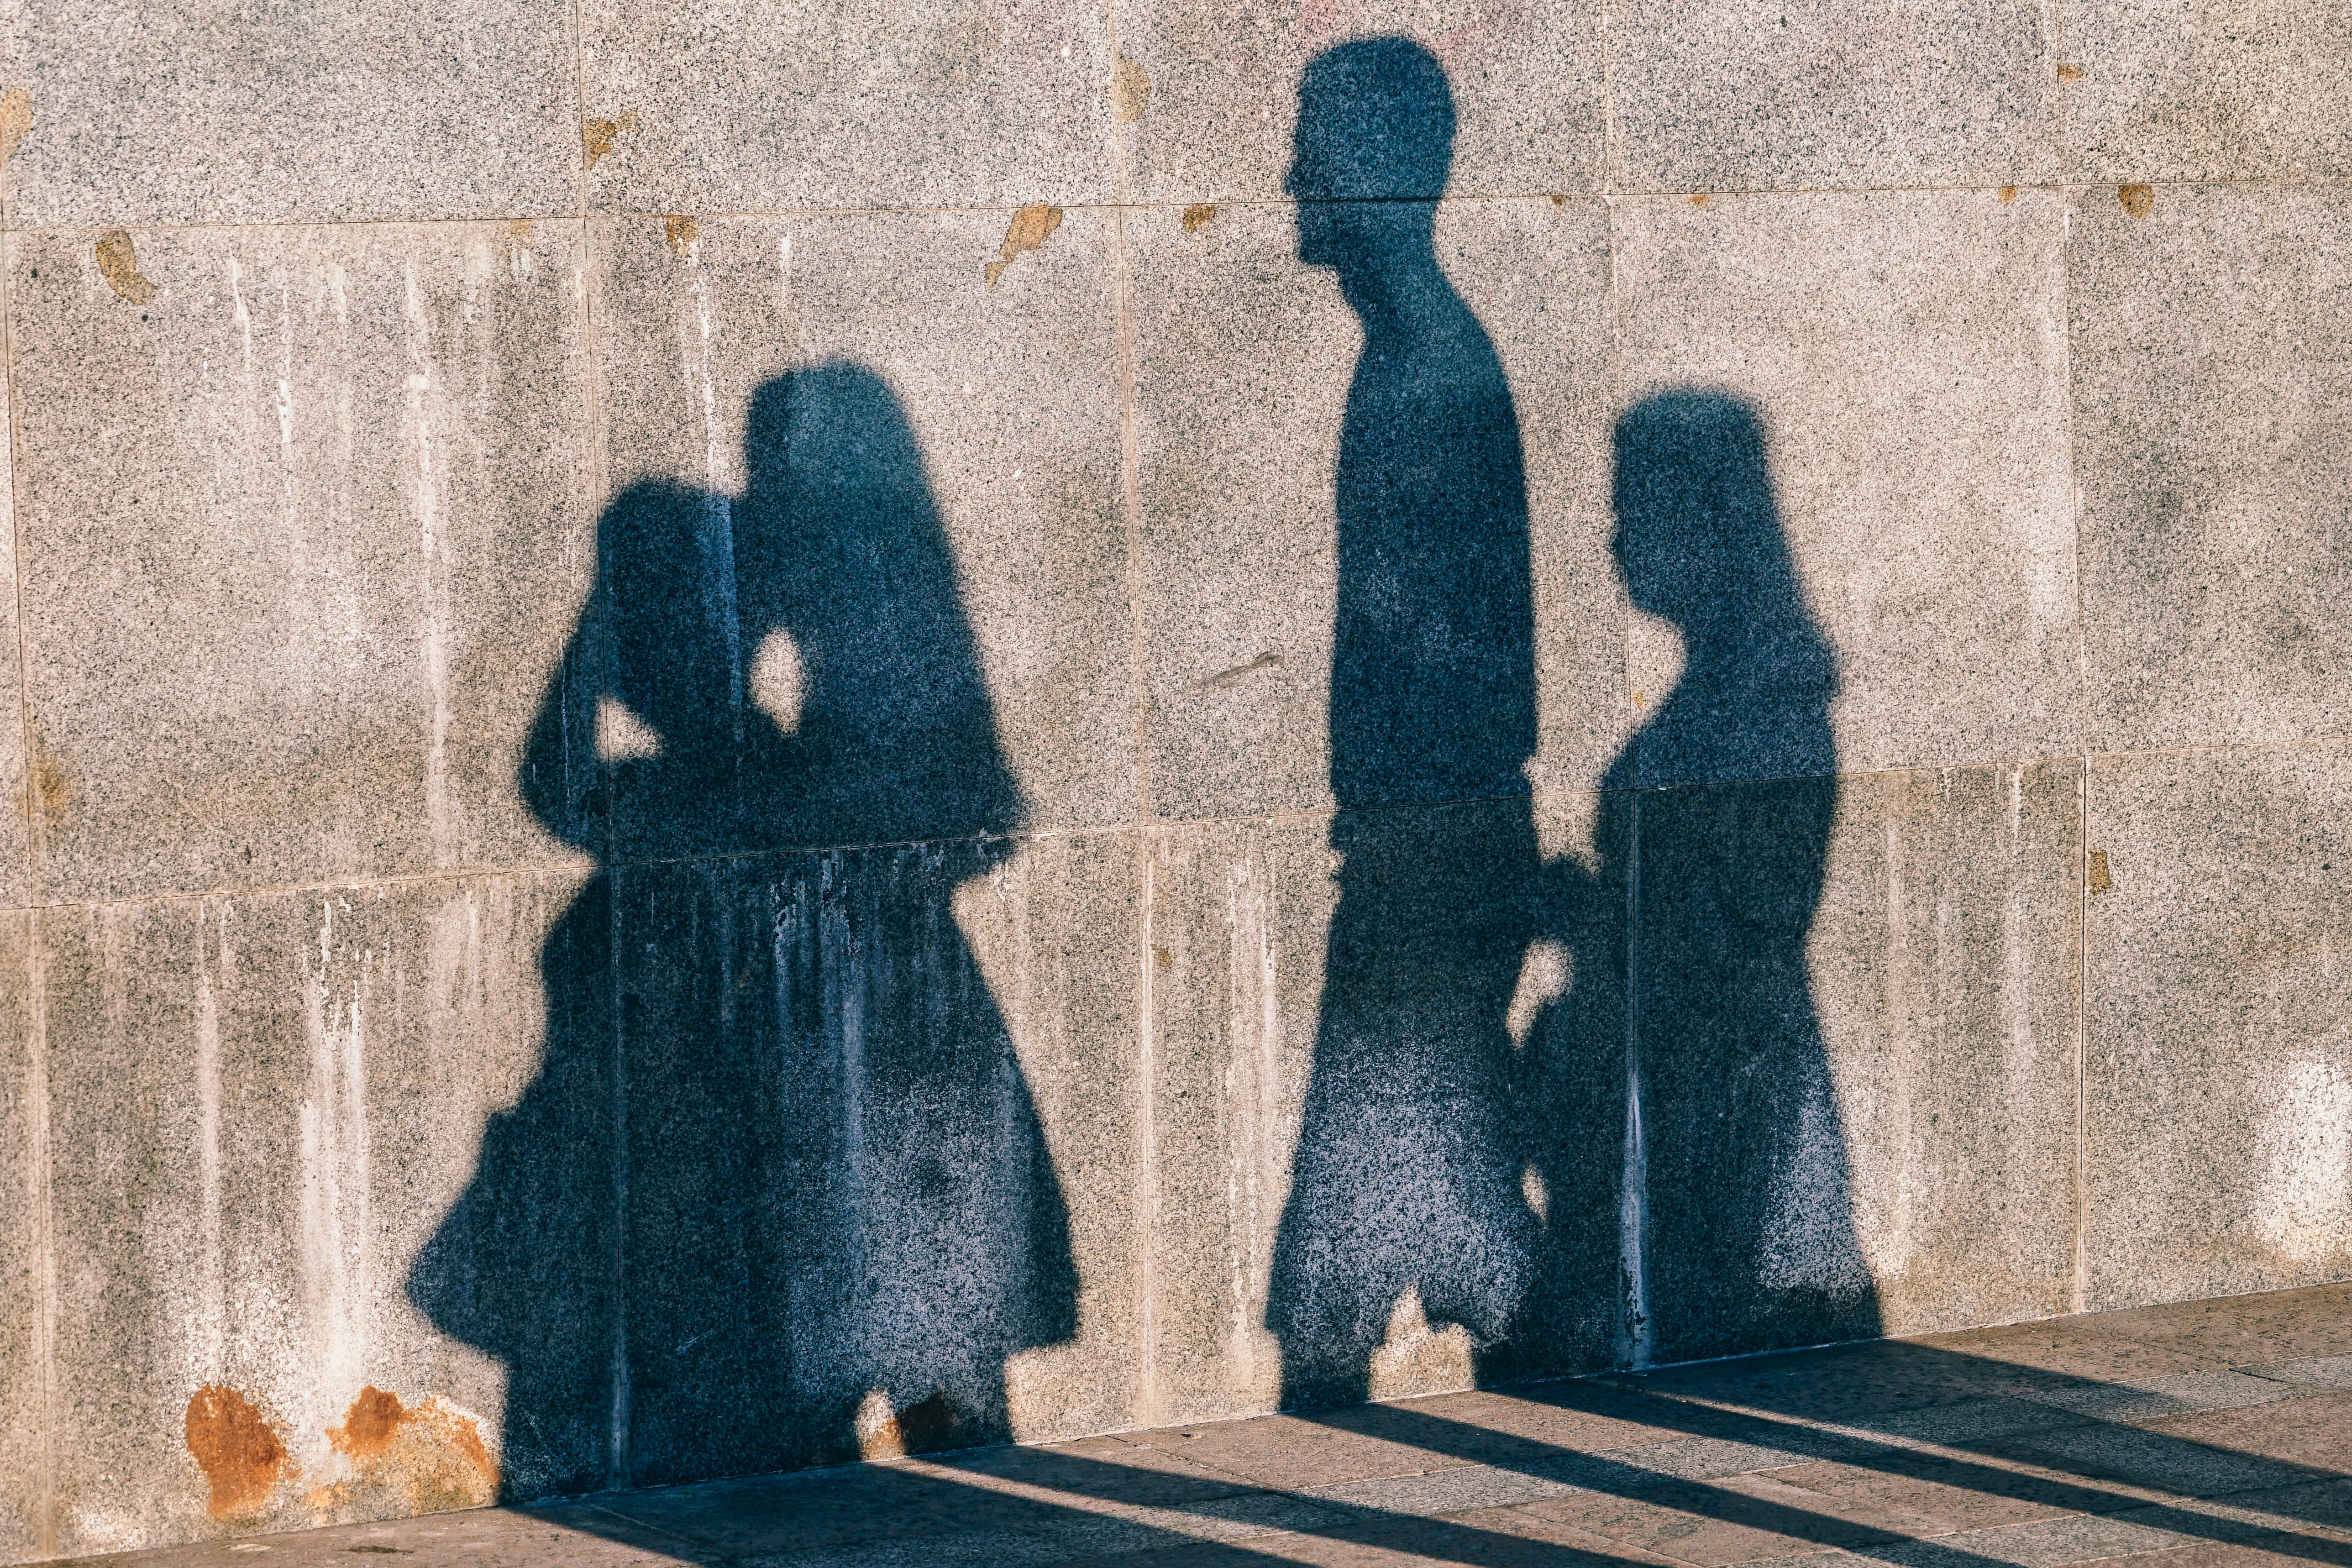 shadow of four people on wall